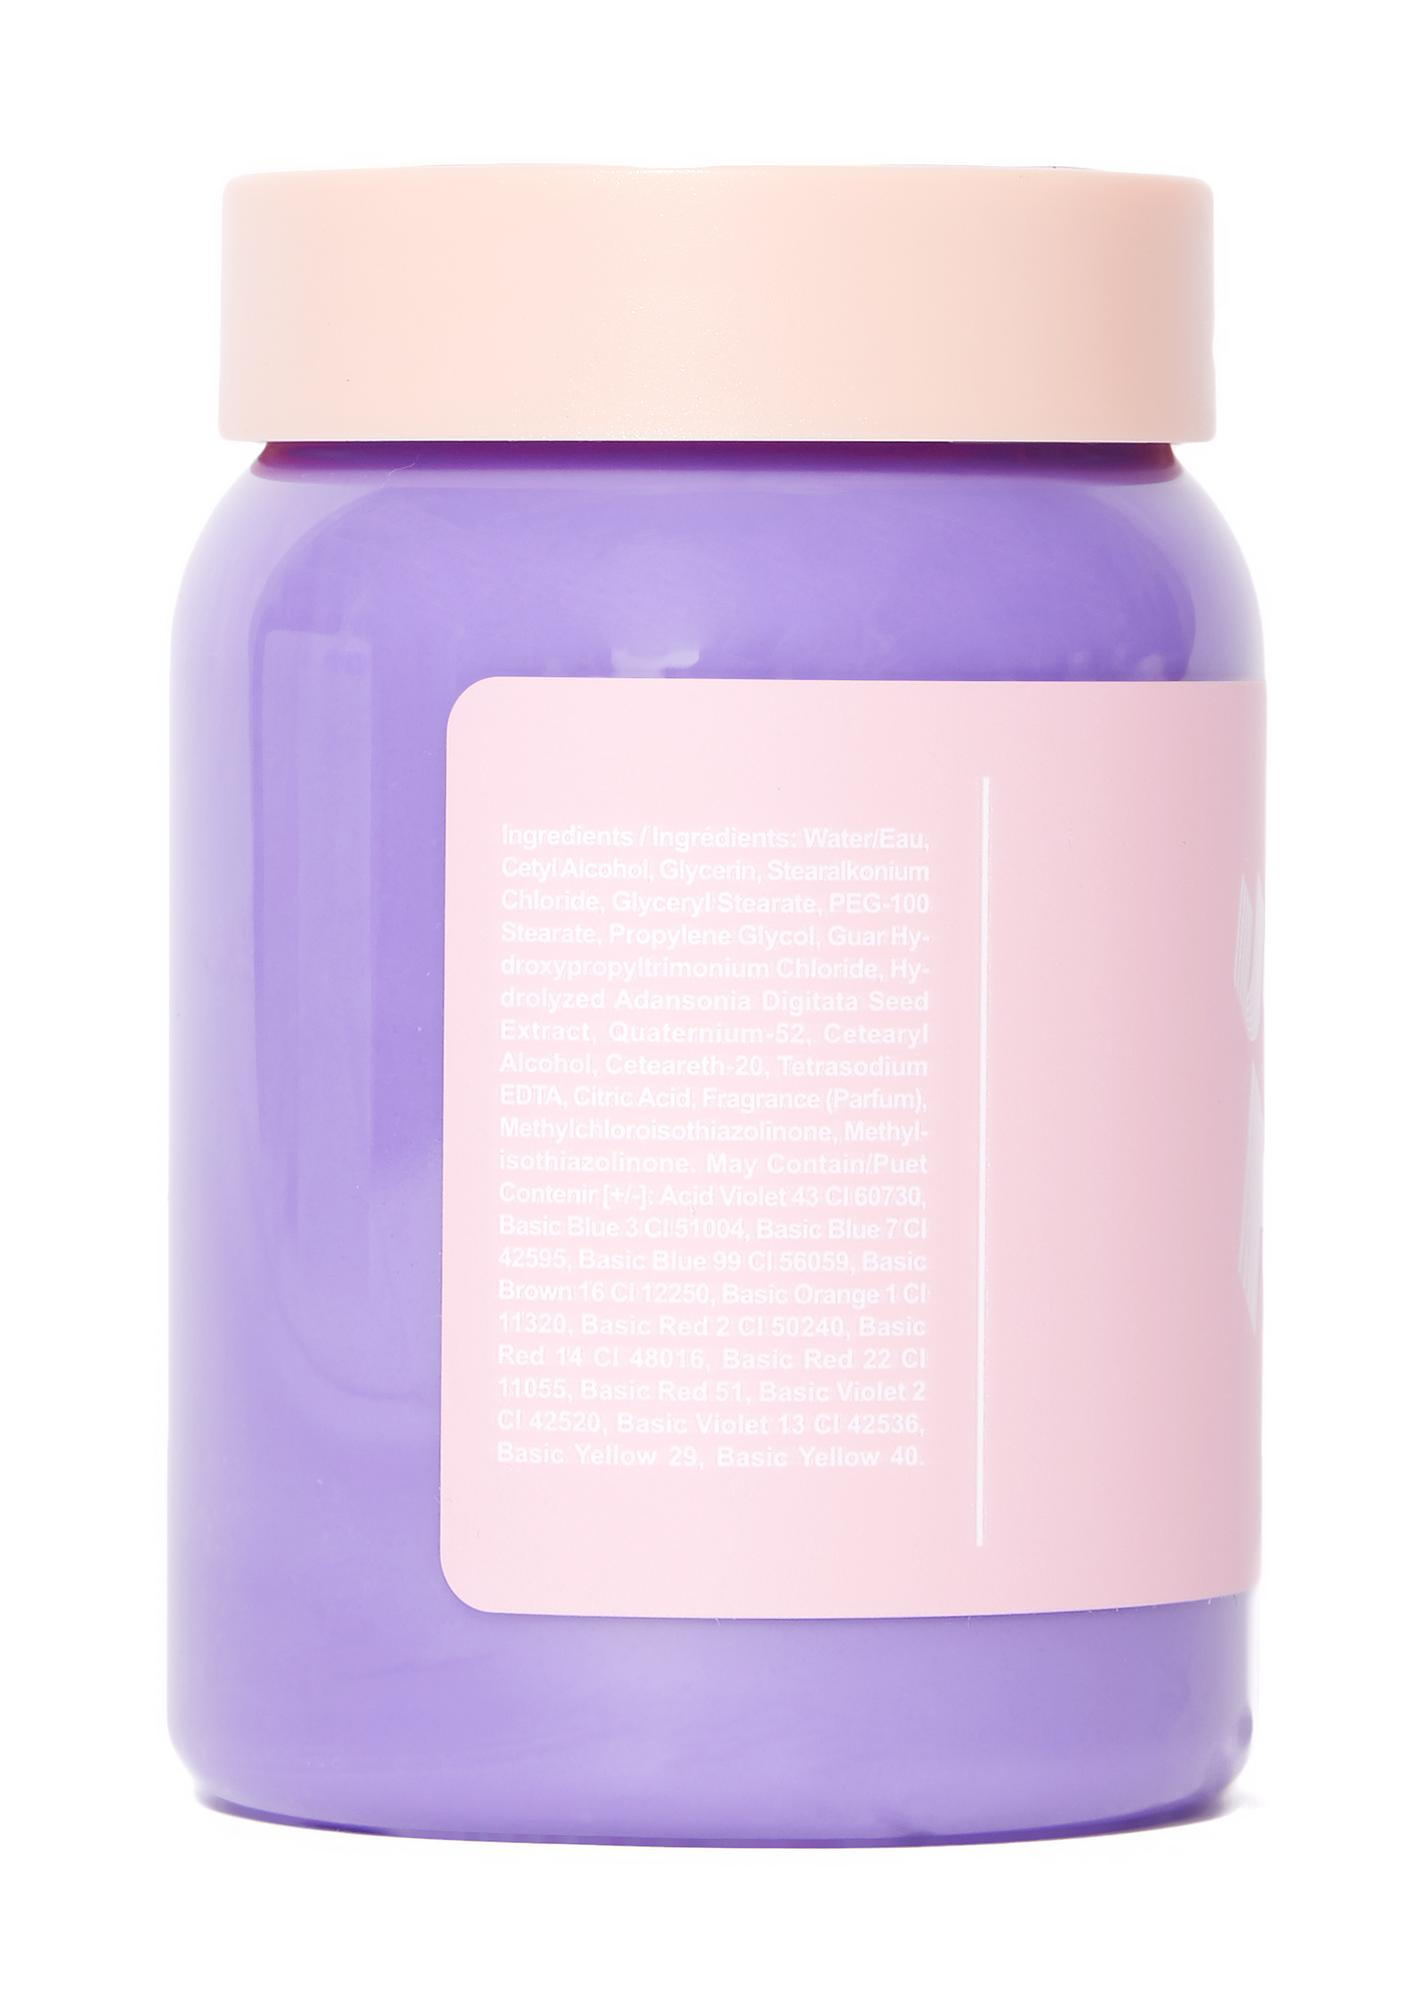 Lime Crime Moonchild Unicorn Hair Dye